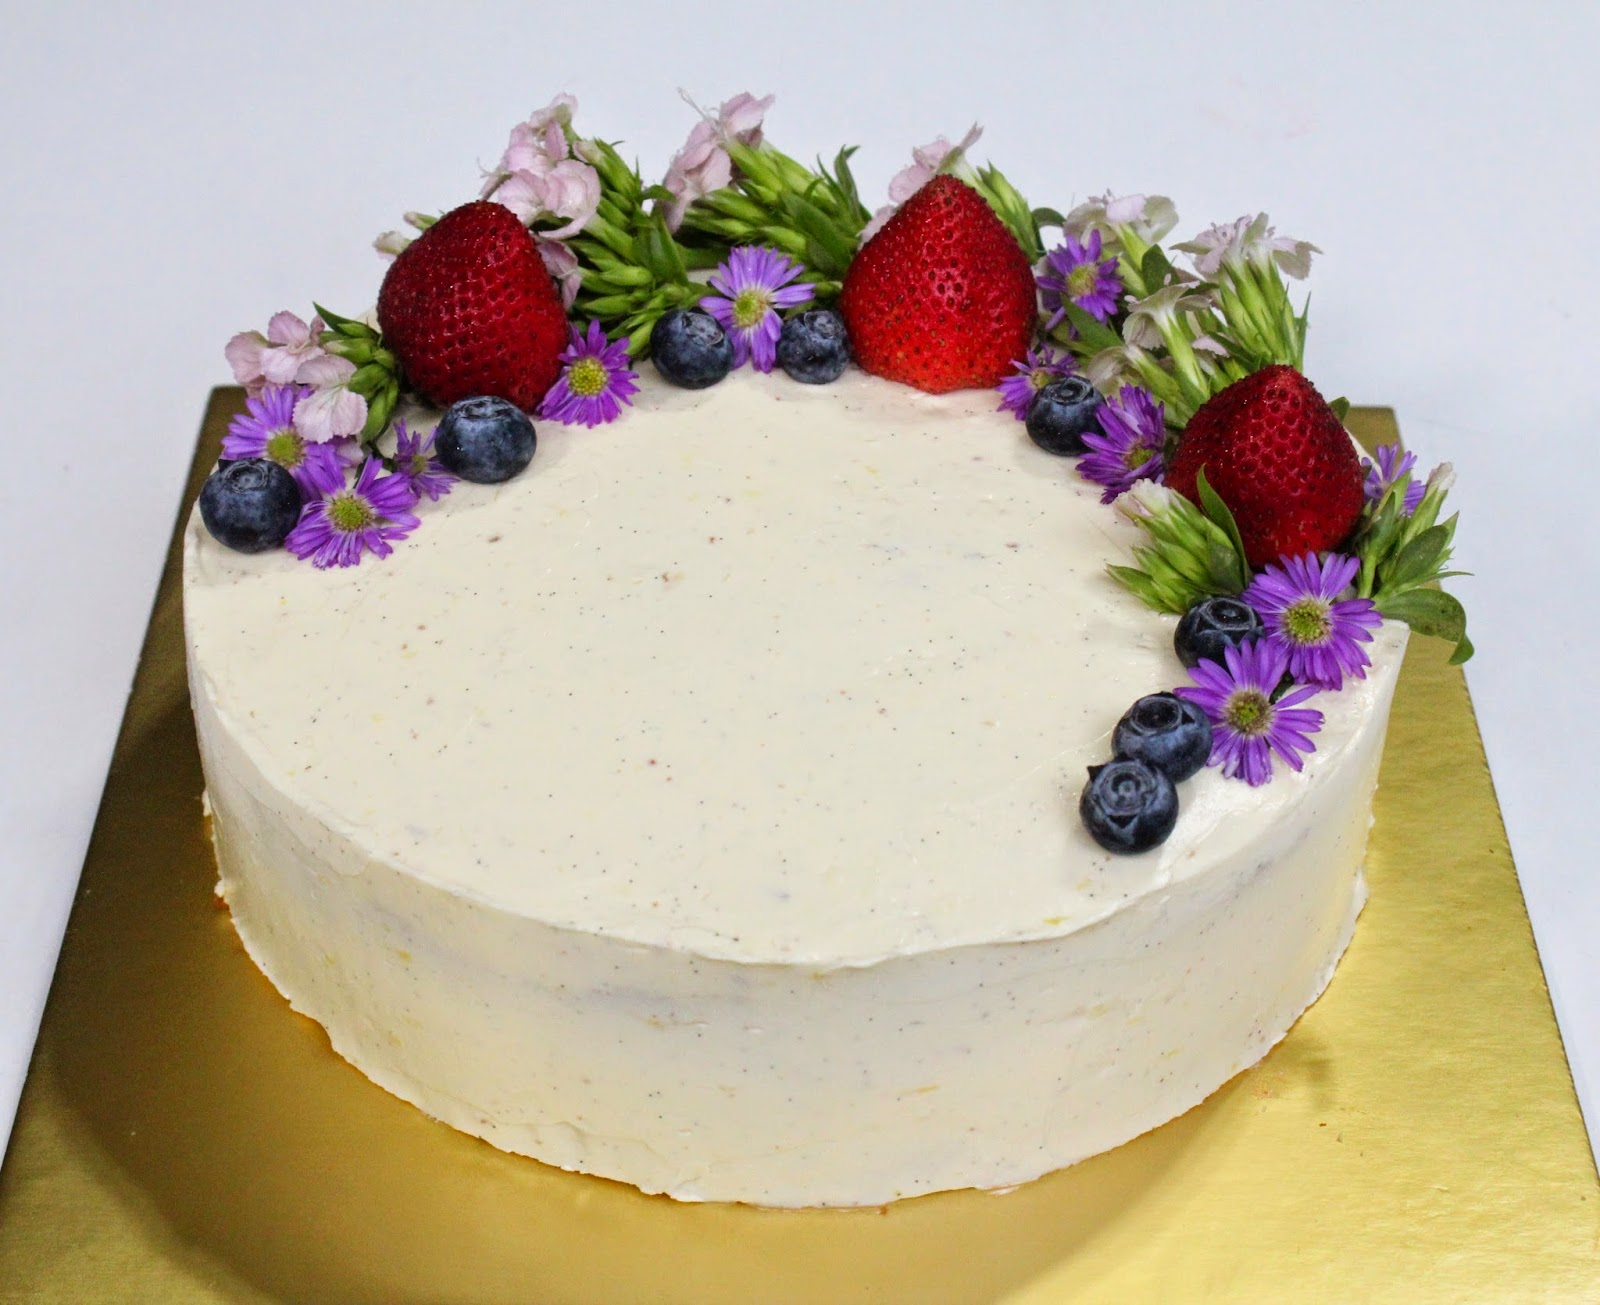 Cake Decorating Ideas Fresh Flowers : Honey Bee Sweets: Earl Grey Lavender Cake with Lemon ...